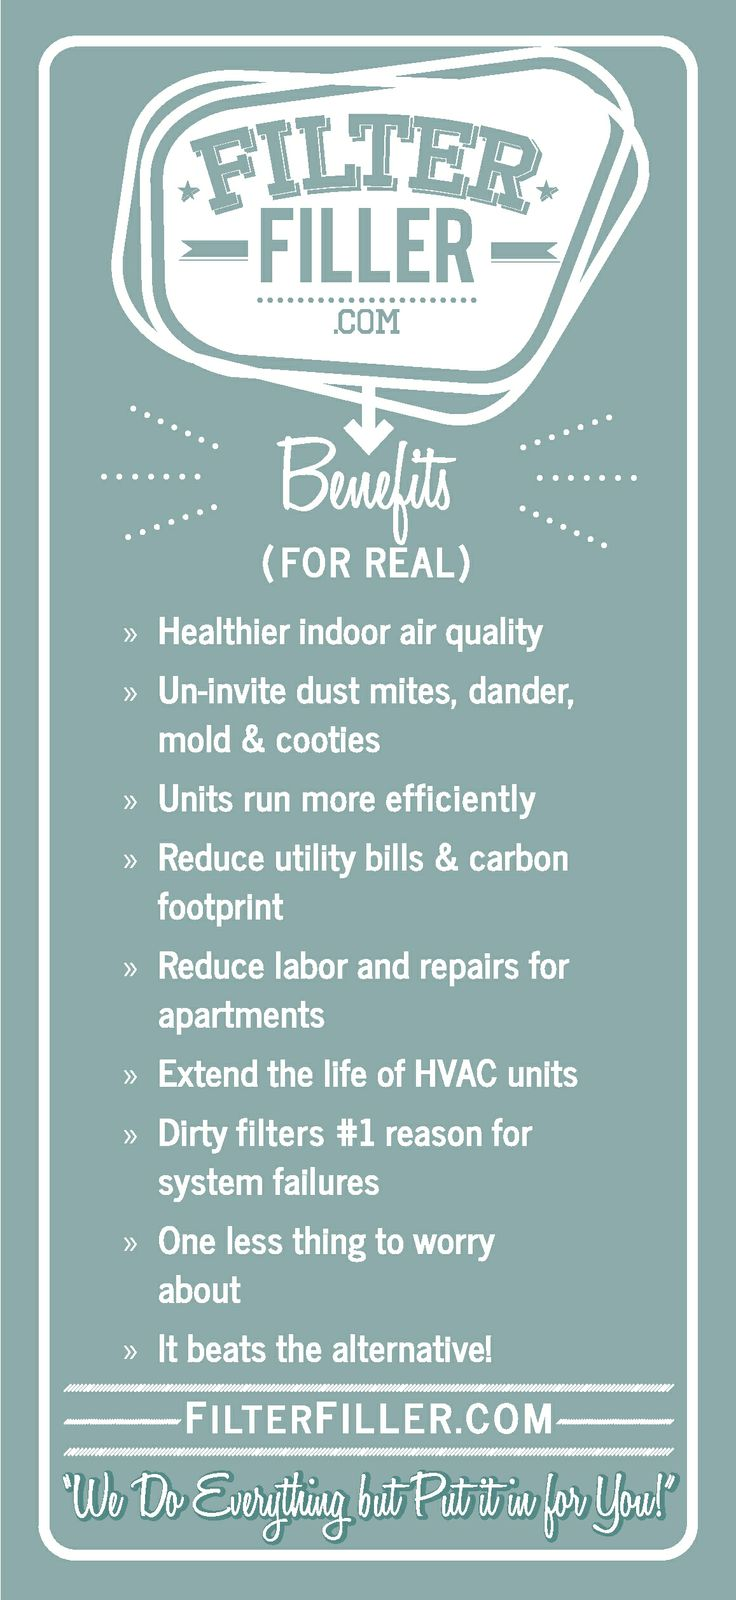 Changing your AC filters regularly can help prevent dust mites, dander, mold and cooties AND can help your AC unit cost less in electricity and repair bills